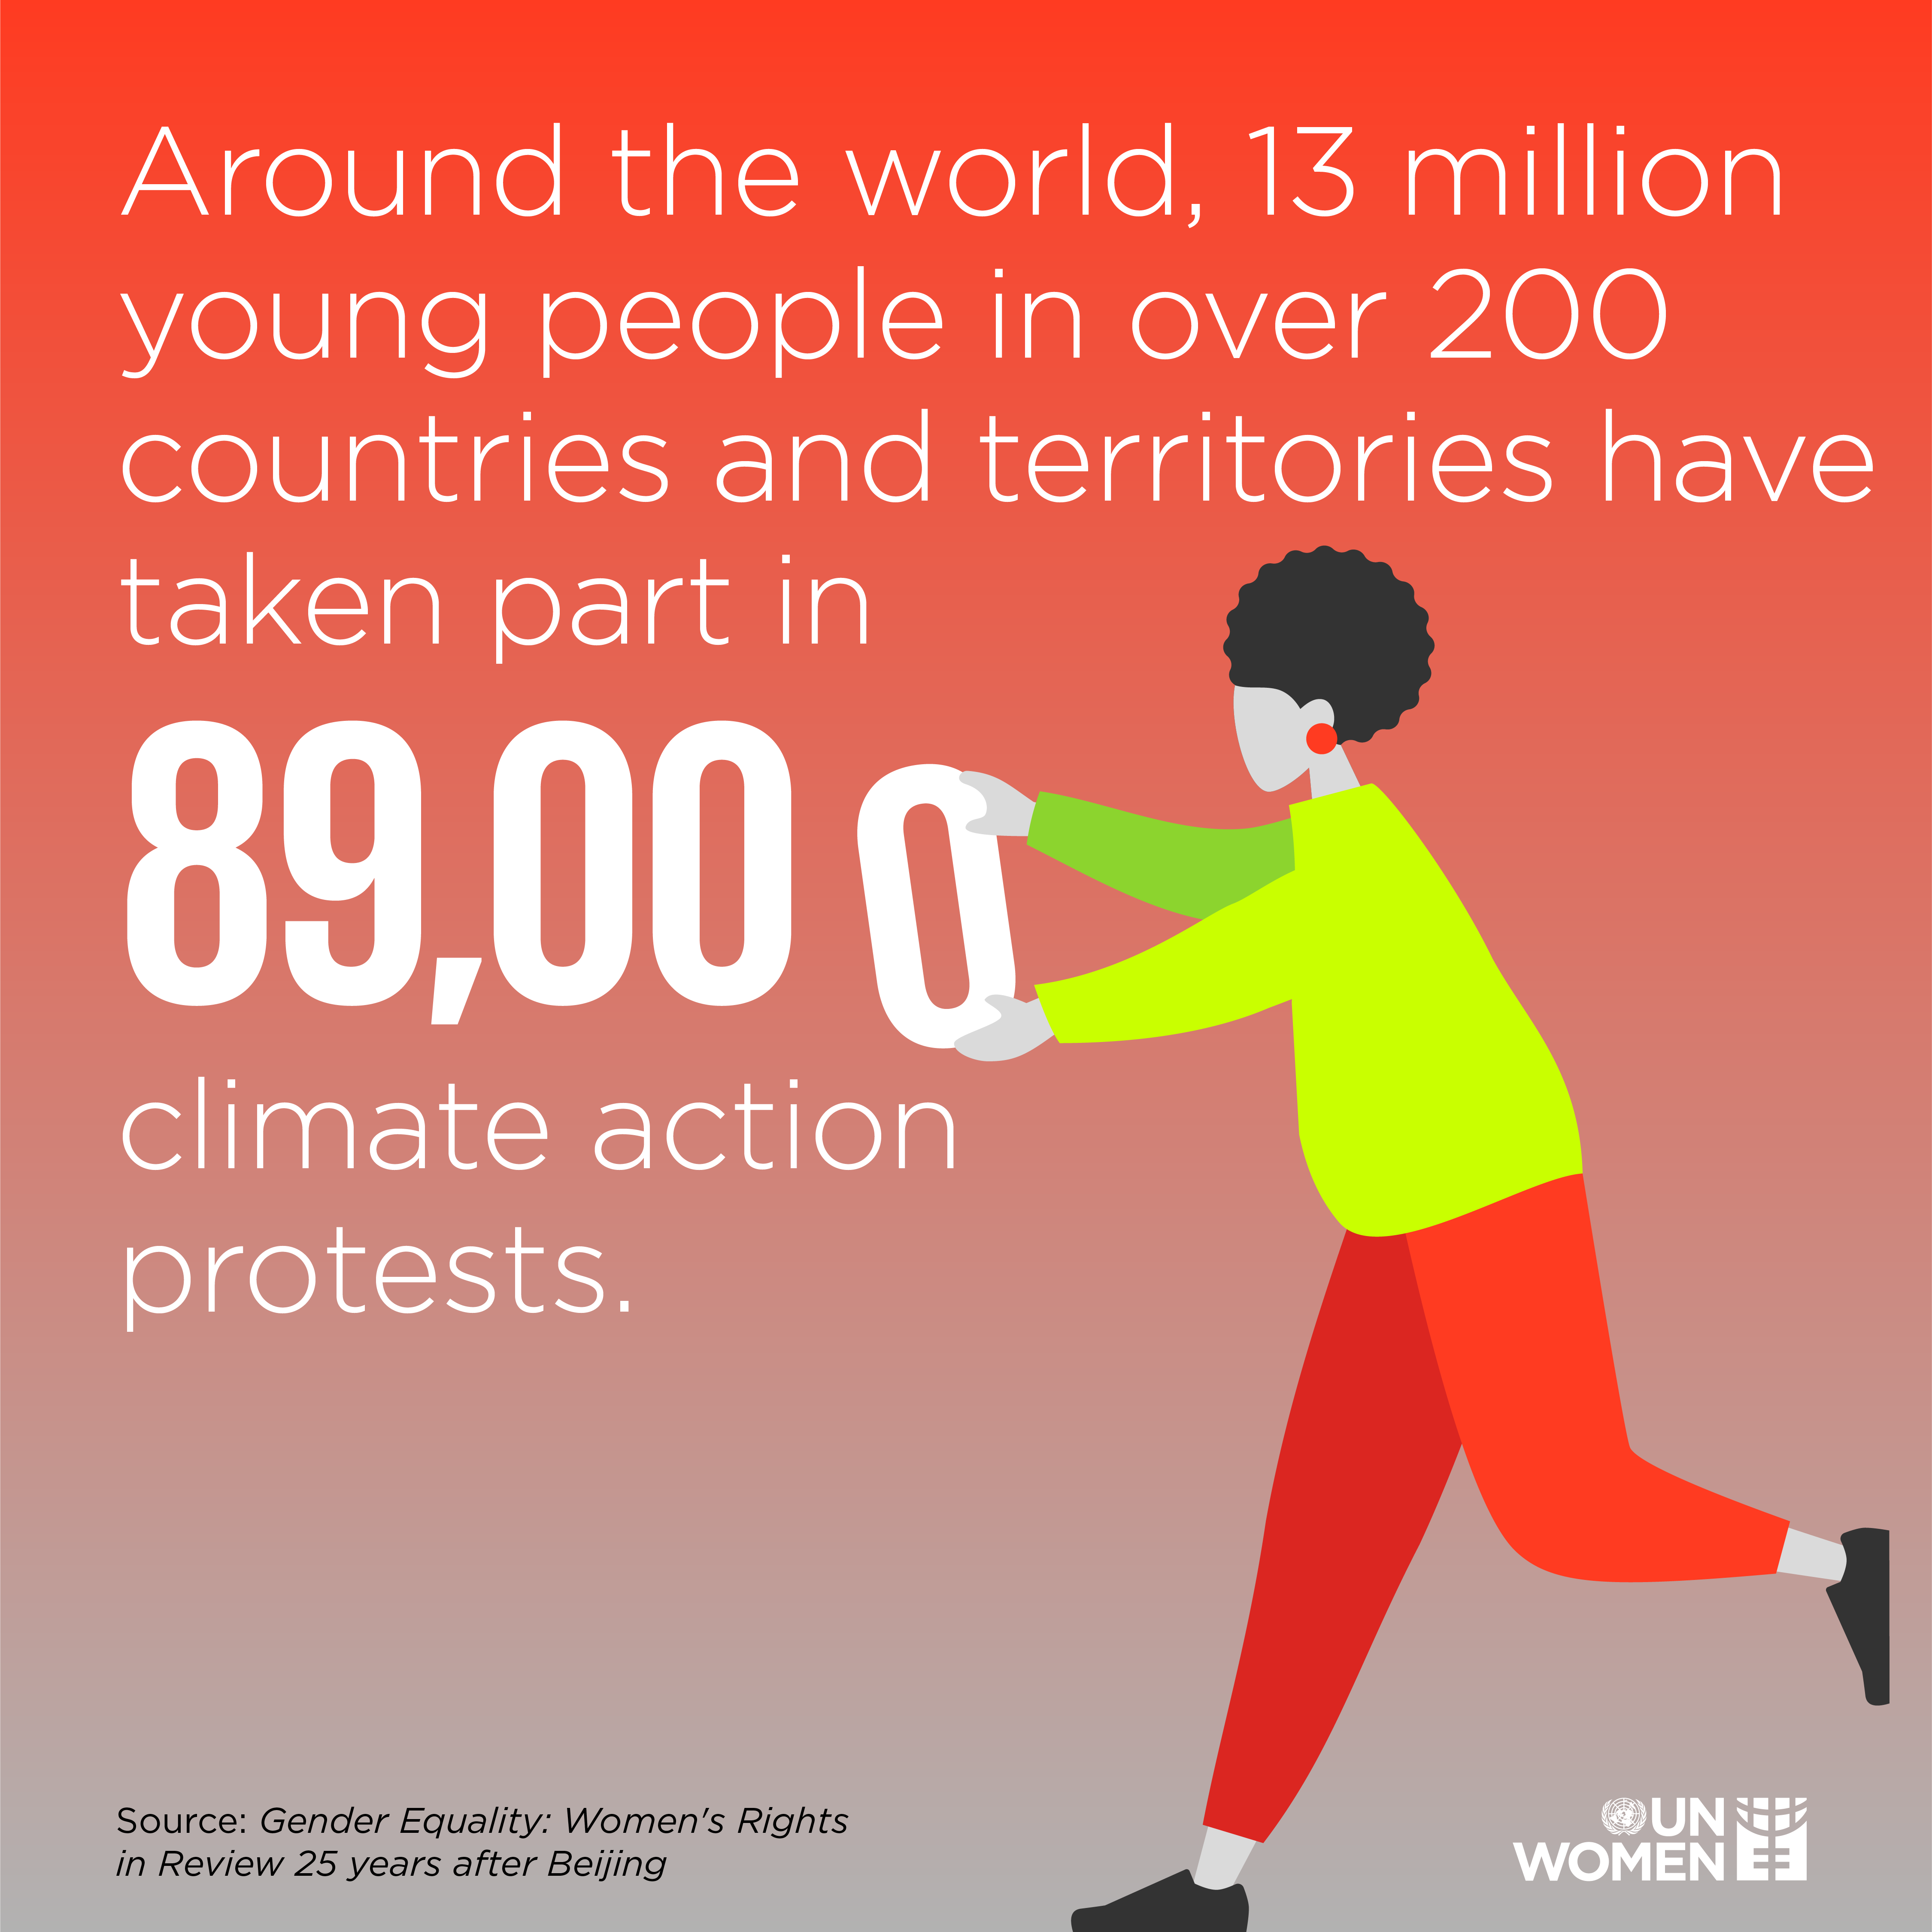 Around the world, 13 million young people in over 200 countries and territories have taken part in 89,000 climate action protests.